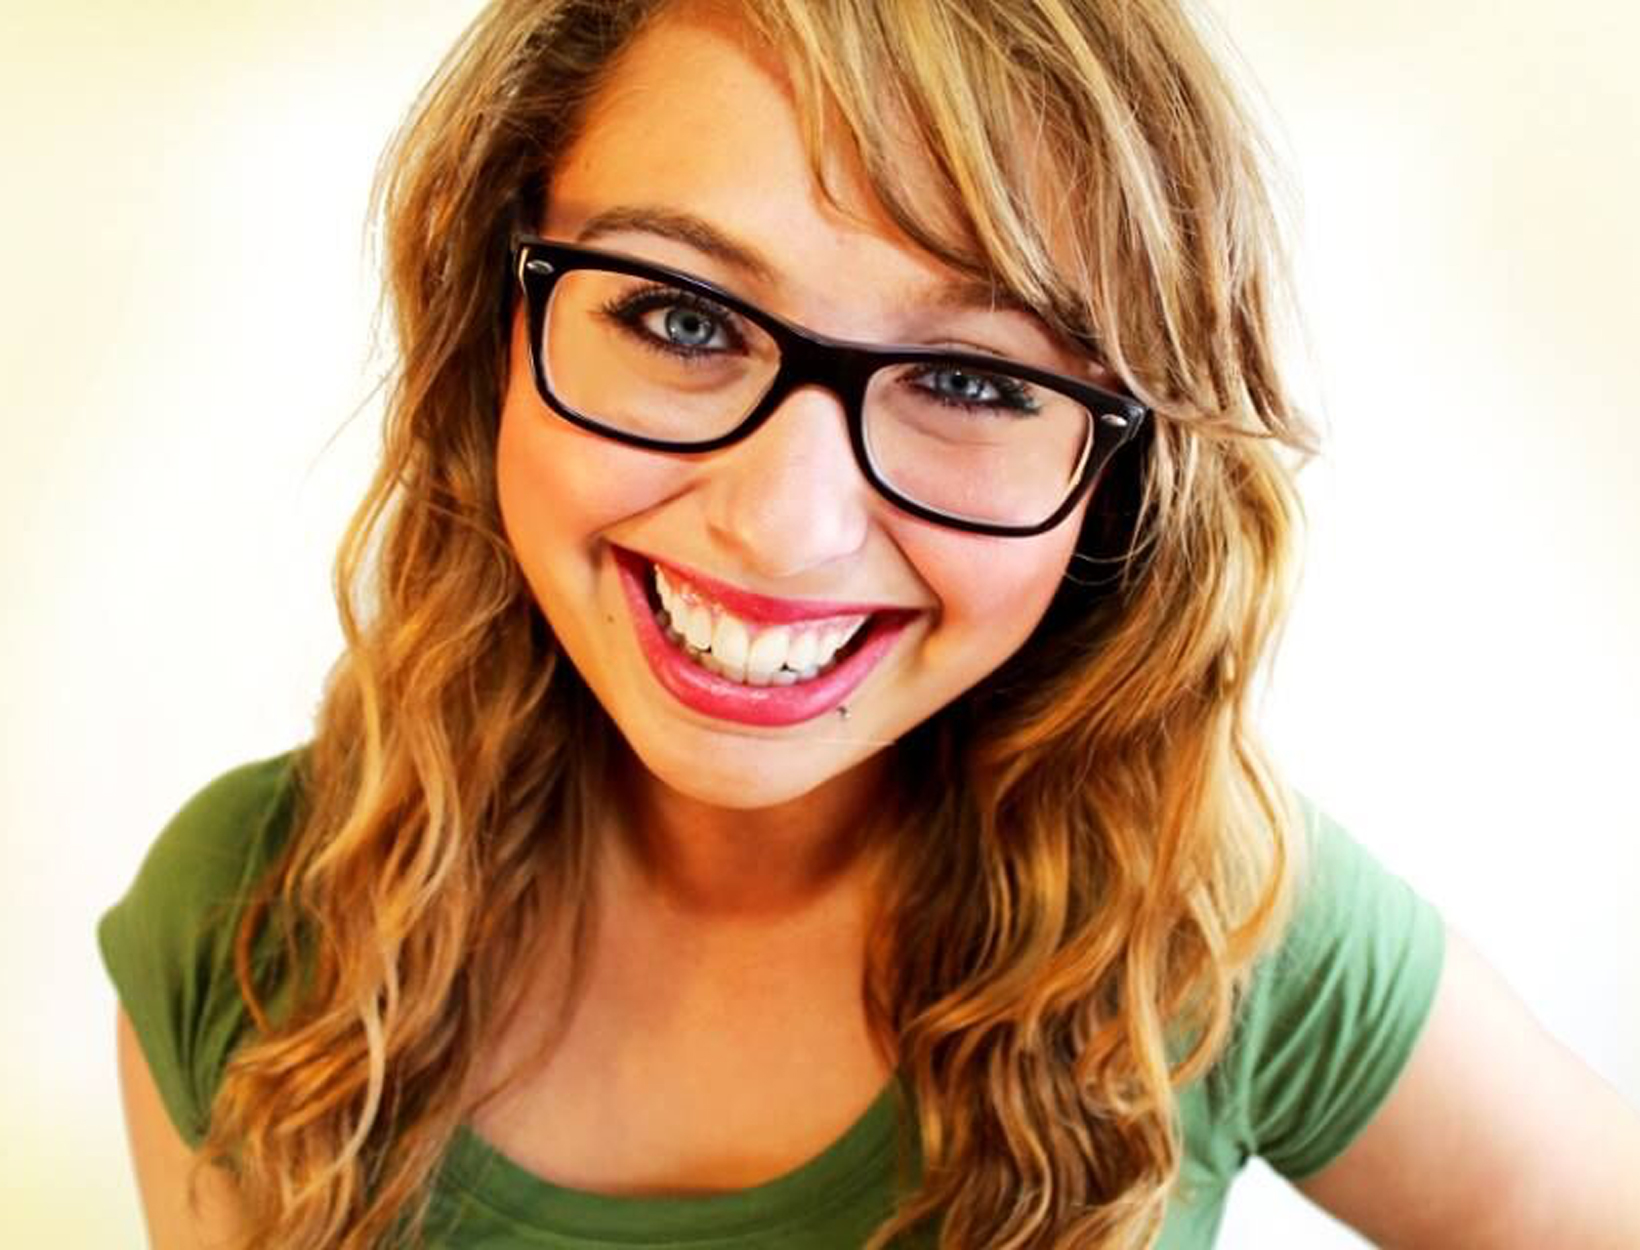 Laci Green: Sex Ed for the Internet